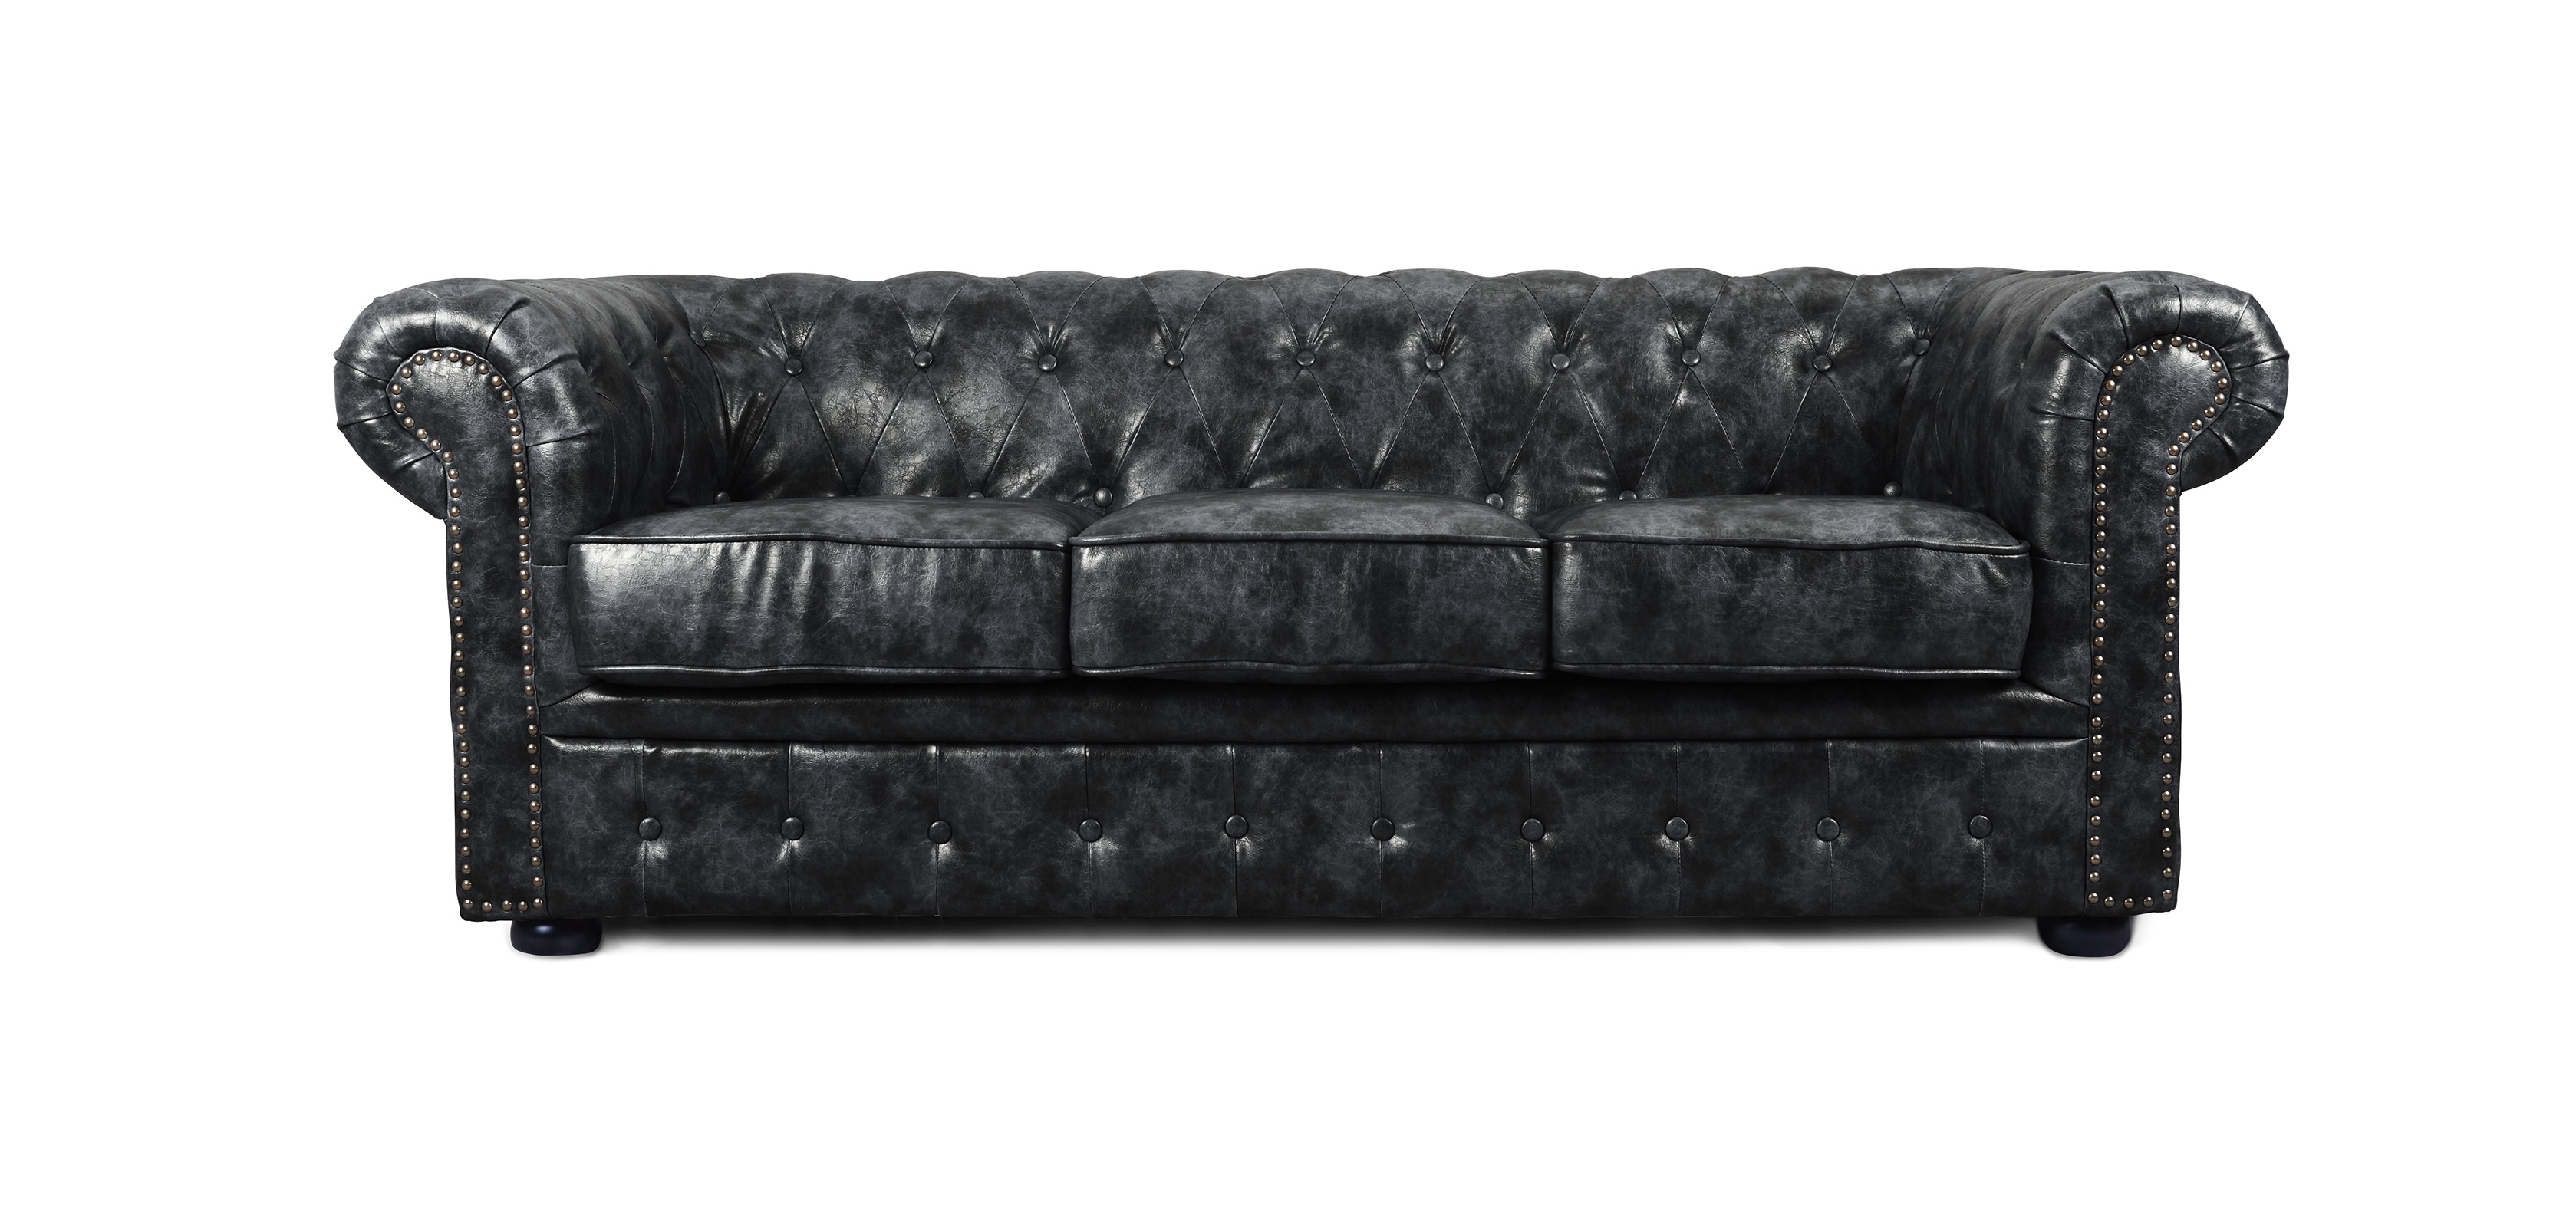 Canap chesterfield vintage 3 places cuir premium pas cher for Canape chesterfield cuir pas cher